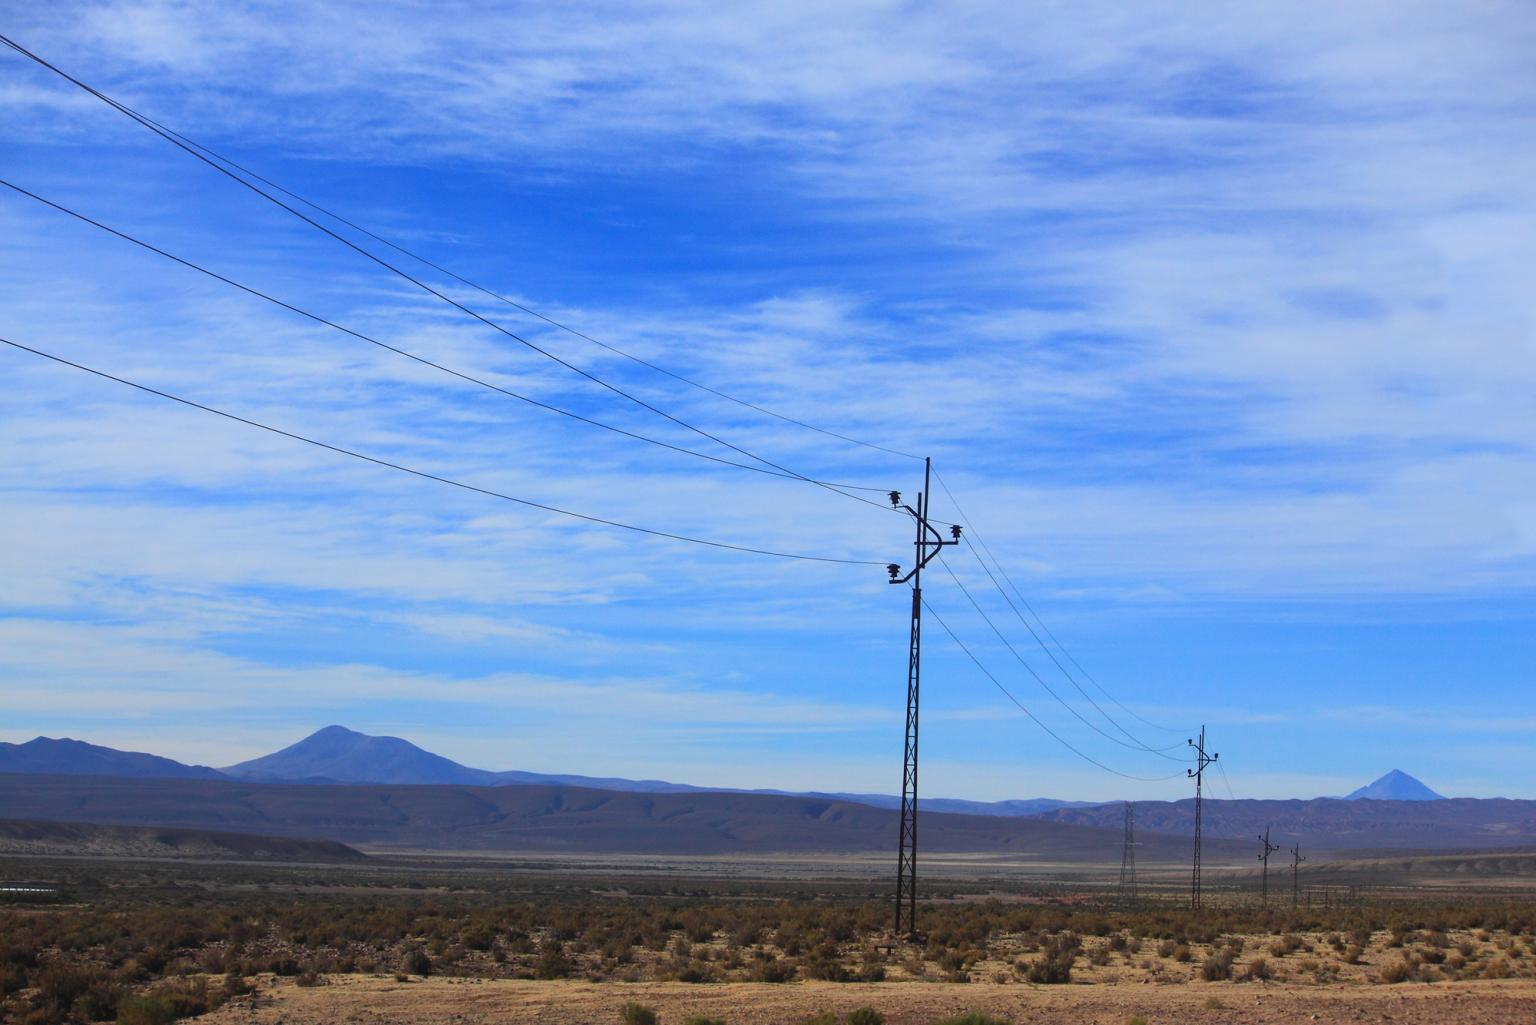 Electricity distribution lines at altitude in Bolivia